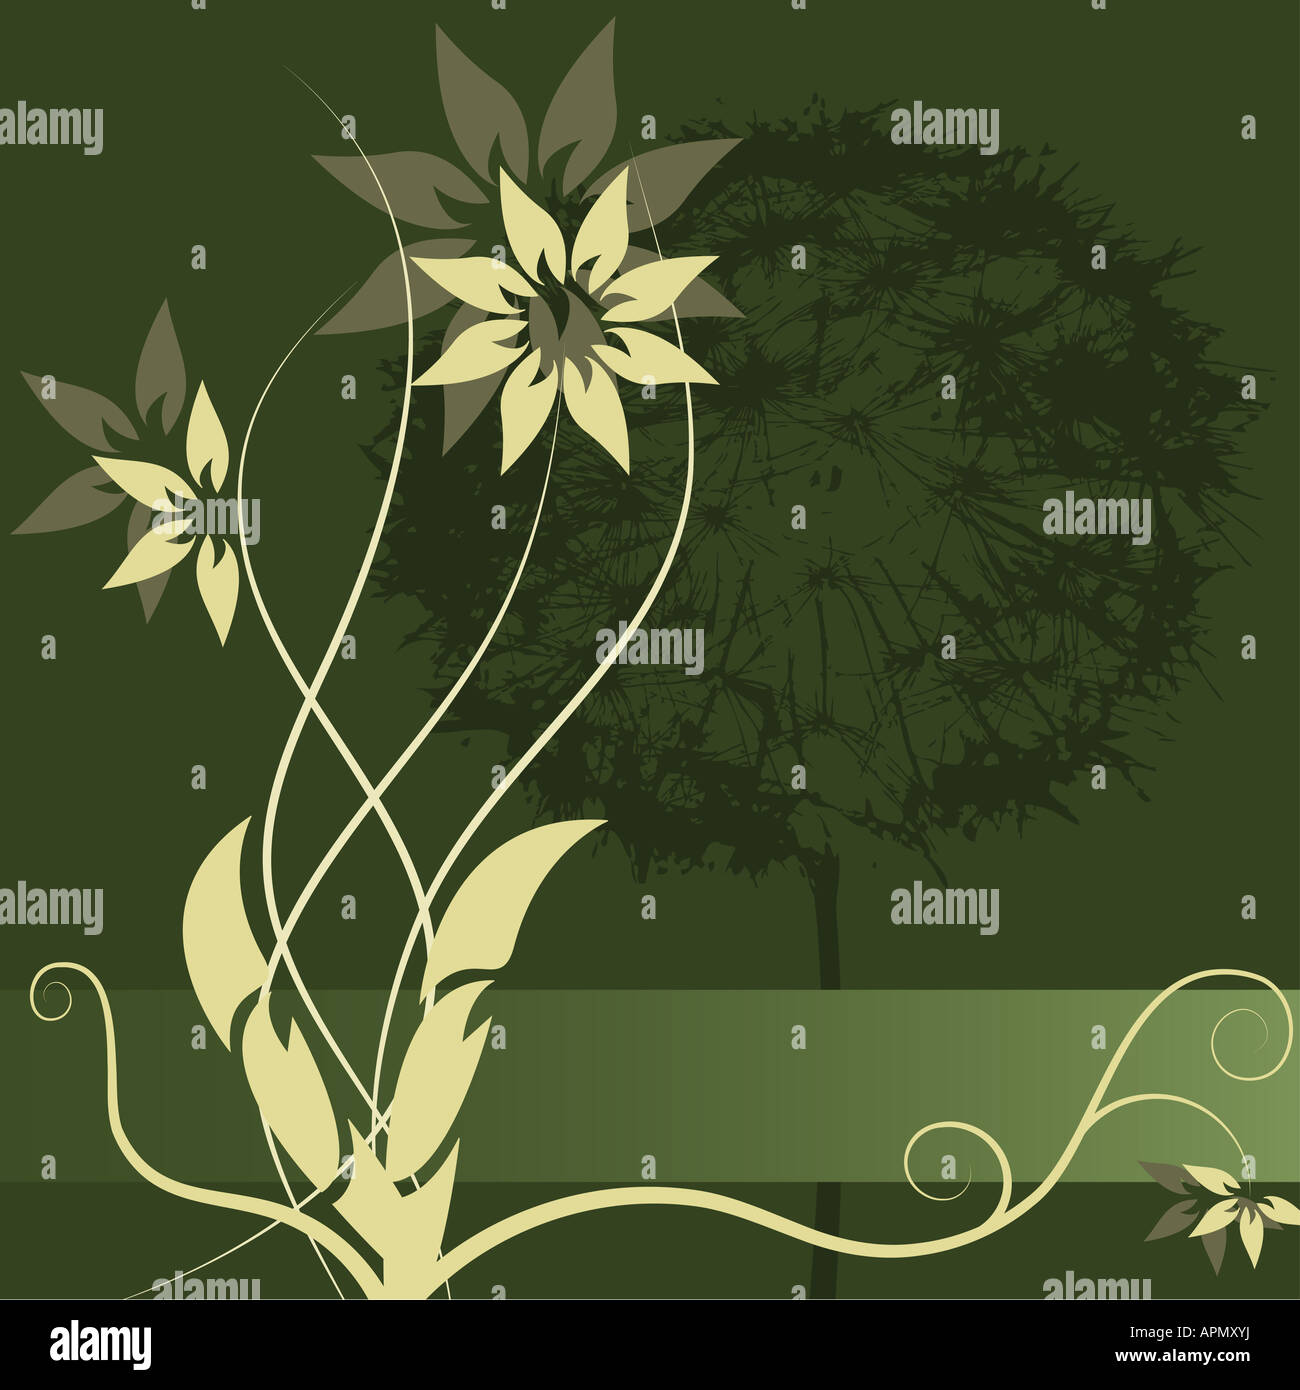 Graphic vector flower label design - Stock Image